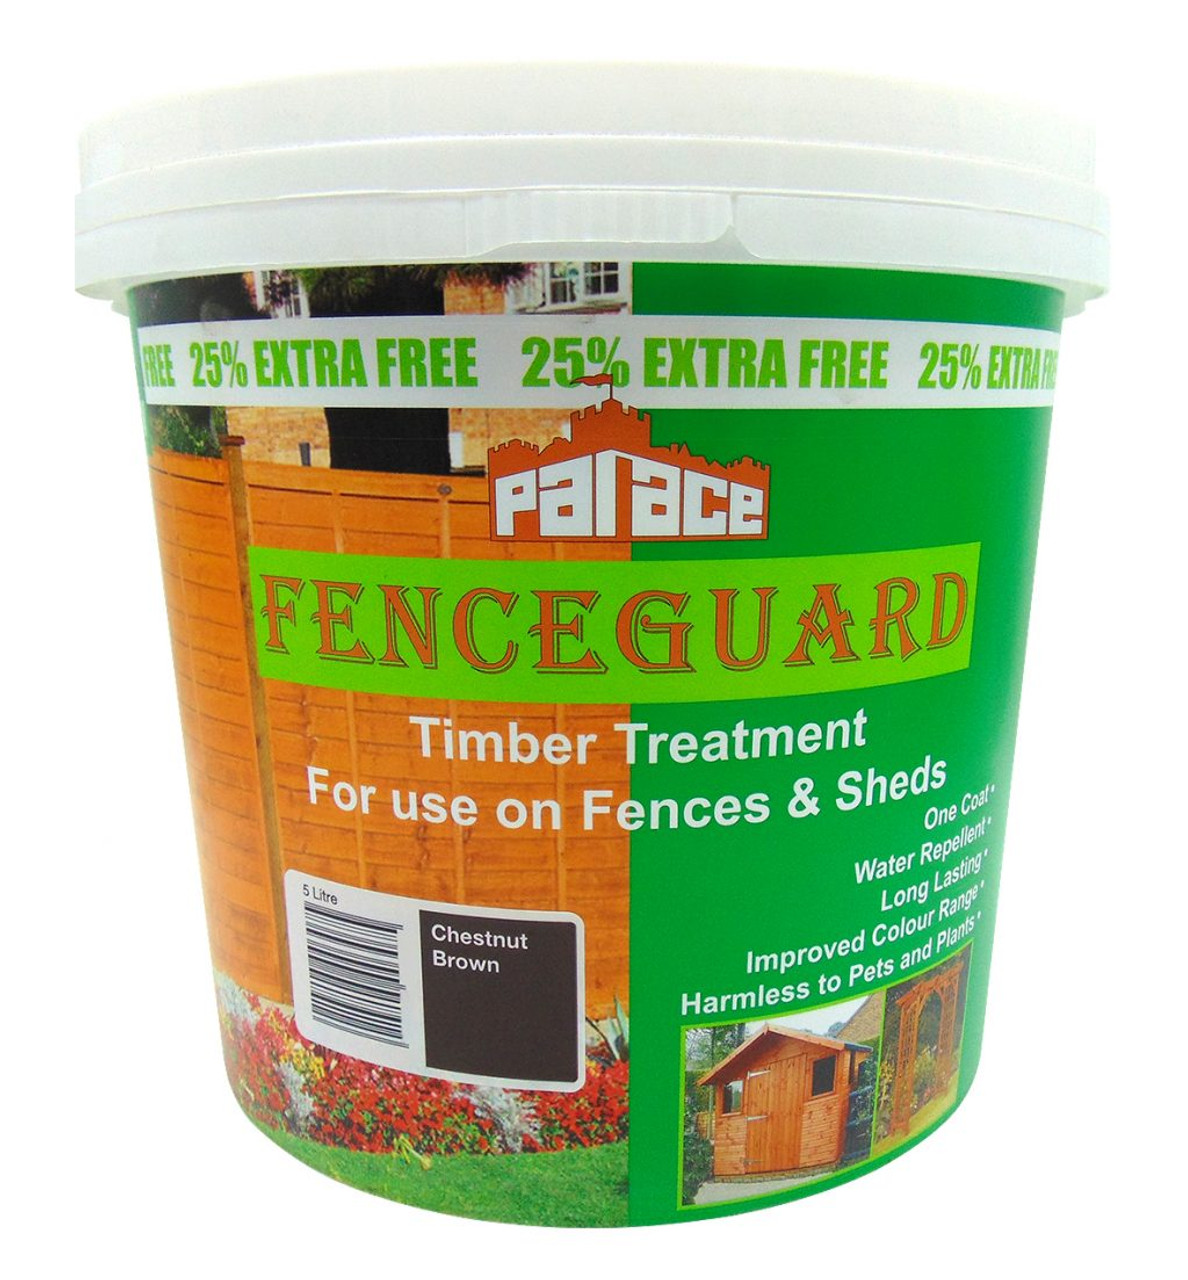 Palace Fenceguard brush-on timber treatment - Chestnut Brown - LOCAL DELIVERY ONLY